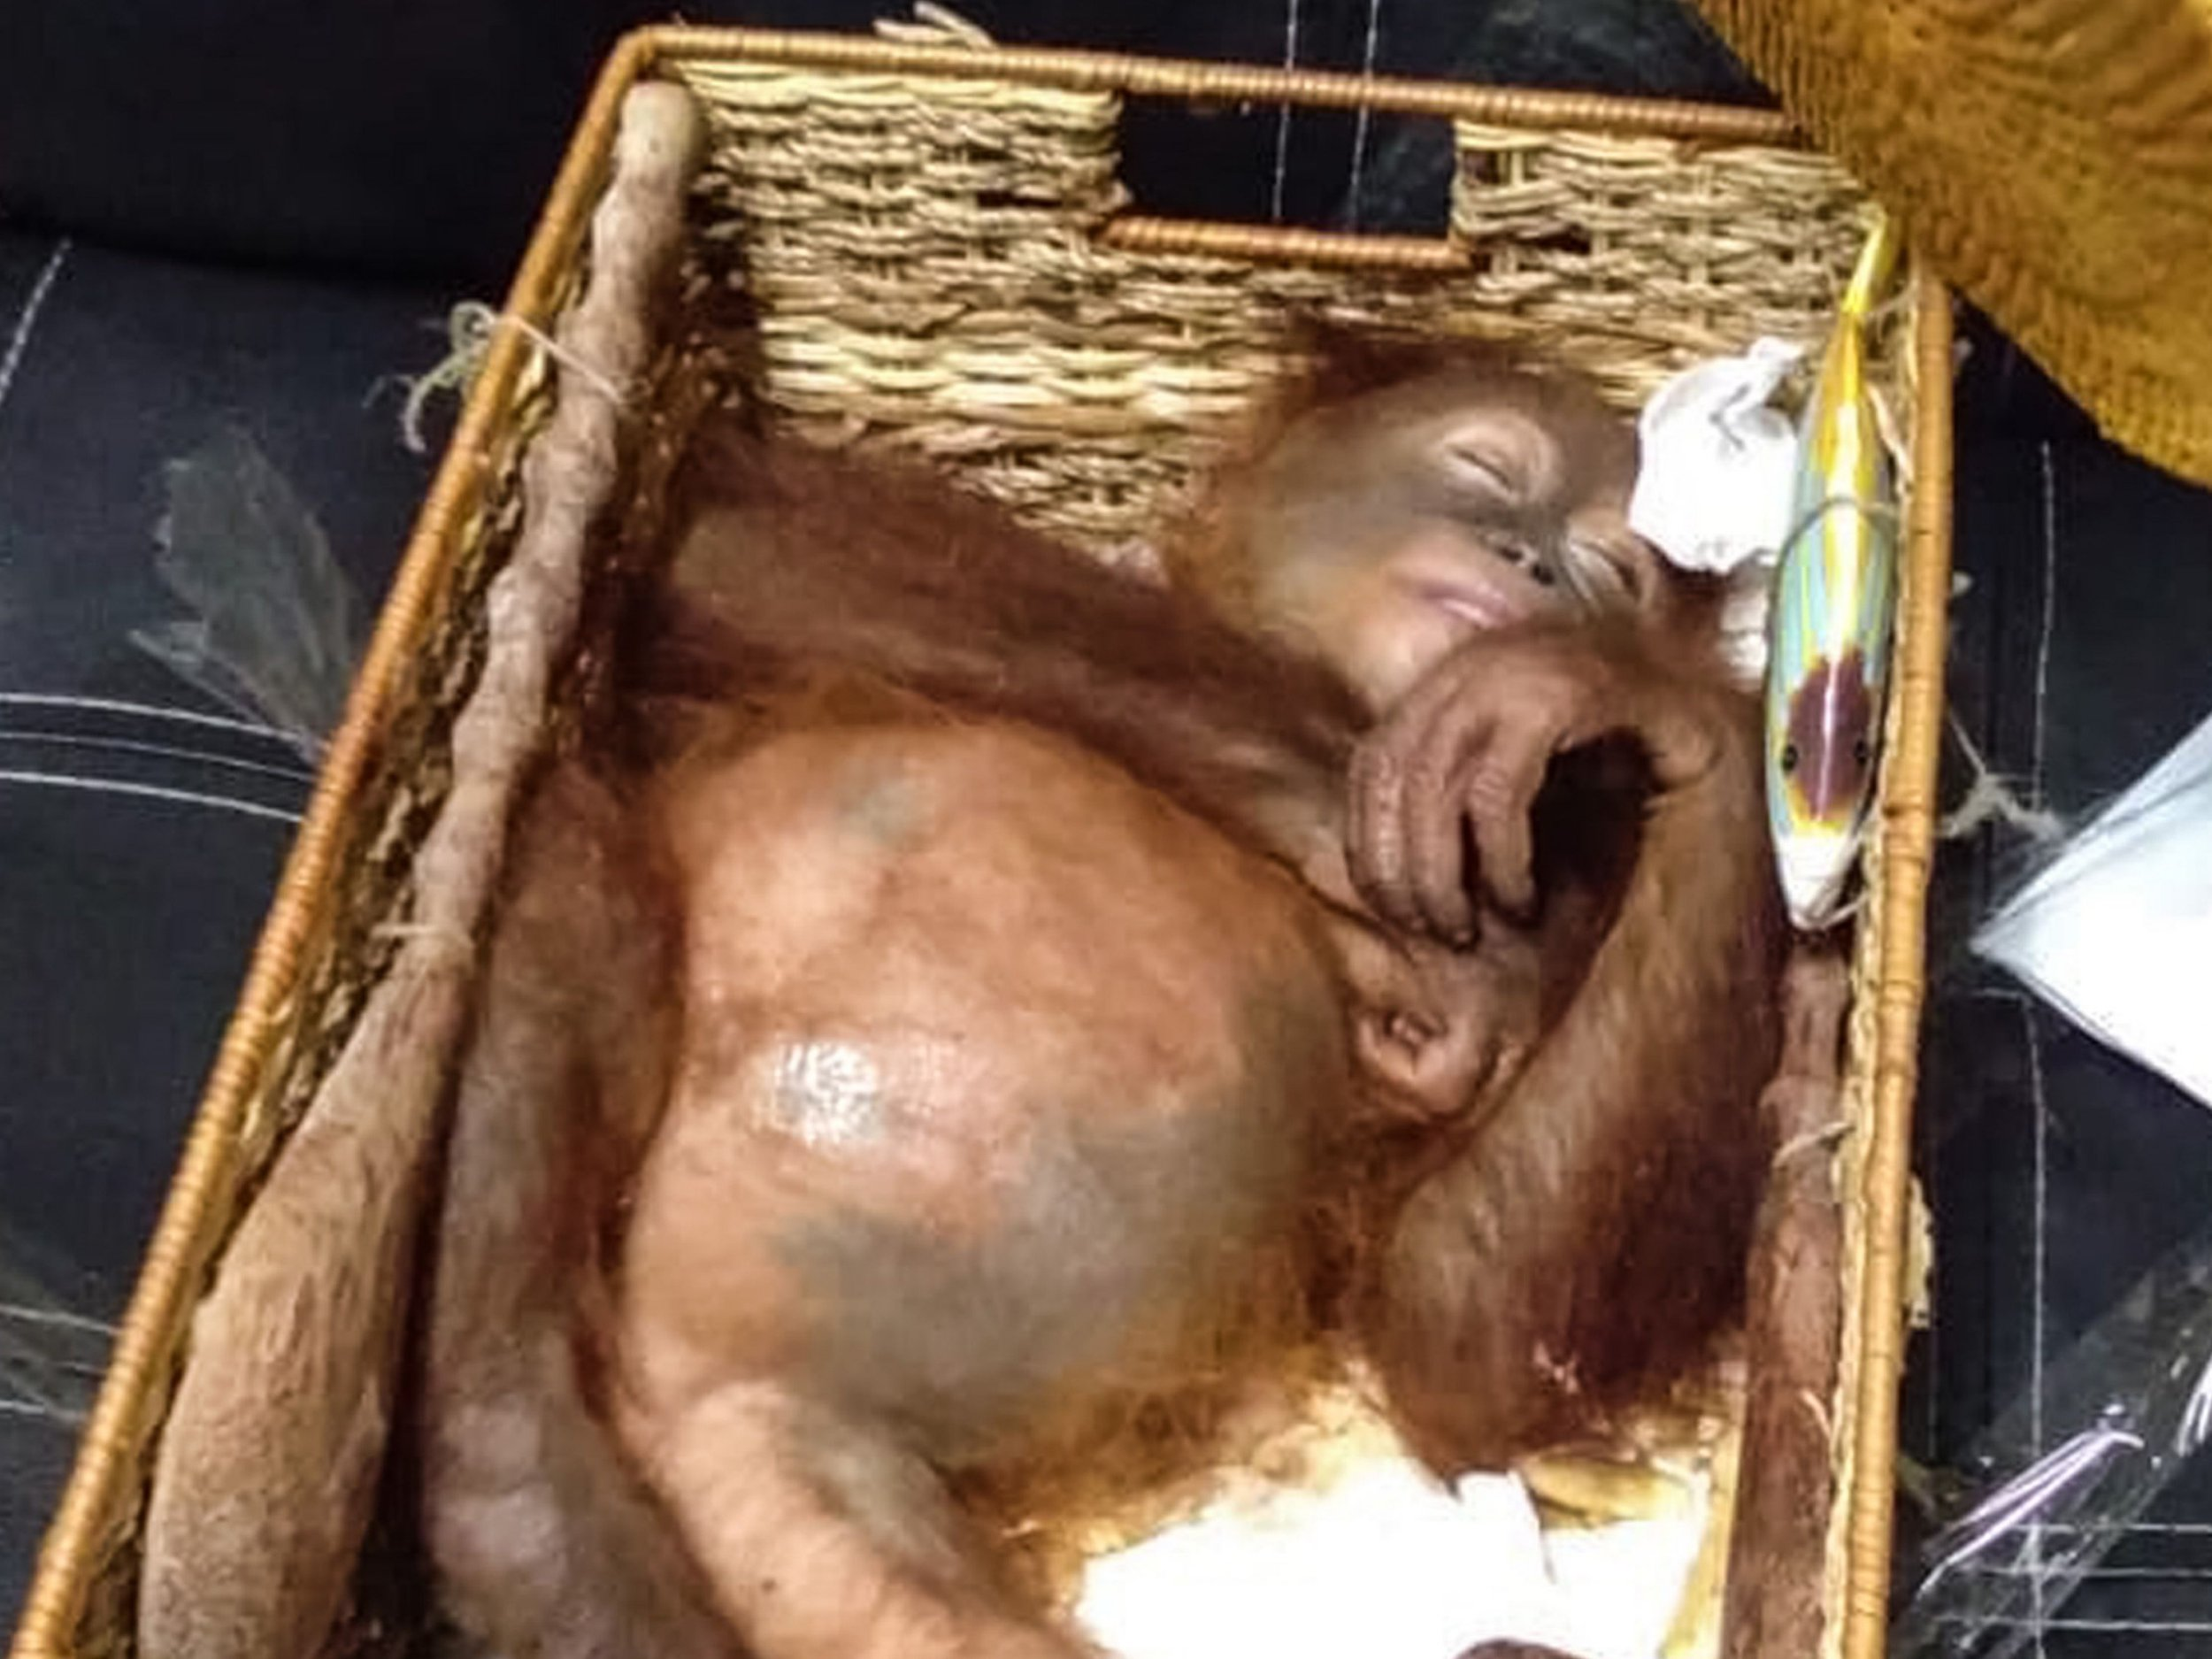 This welfare design taken and expelled on Mar 23, 2019 by a Natural Resources Conservation Agency of Bali shows a detected two-year-old orangutan resting inside a rattan basket, after a bootlegging try by a Russian traveller during Bali's general airfield in Denpasar. - Indonesian authorities on Mar 22 arrested a Russian traveller for attempting to filch an orangutan out of a nation in his suitcase. (Photo by Handout / Natural Resources Conservation Agency of Bali / AFP) / RESTRICTED TO EDITORIAL USE - MANDATORY CREDIT AFP PHOTO / NATURAL RESOURCES CONSERVATION AGENCY OF BALI - NO MARKETING NO ADVERTISING CAMPAIGNS - DISTRIBUTED AS A SERVICE TO CLIENTSHANDOUT/AFP/Getty Images